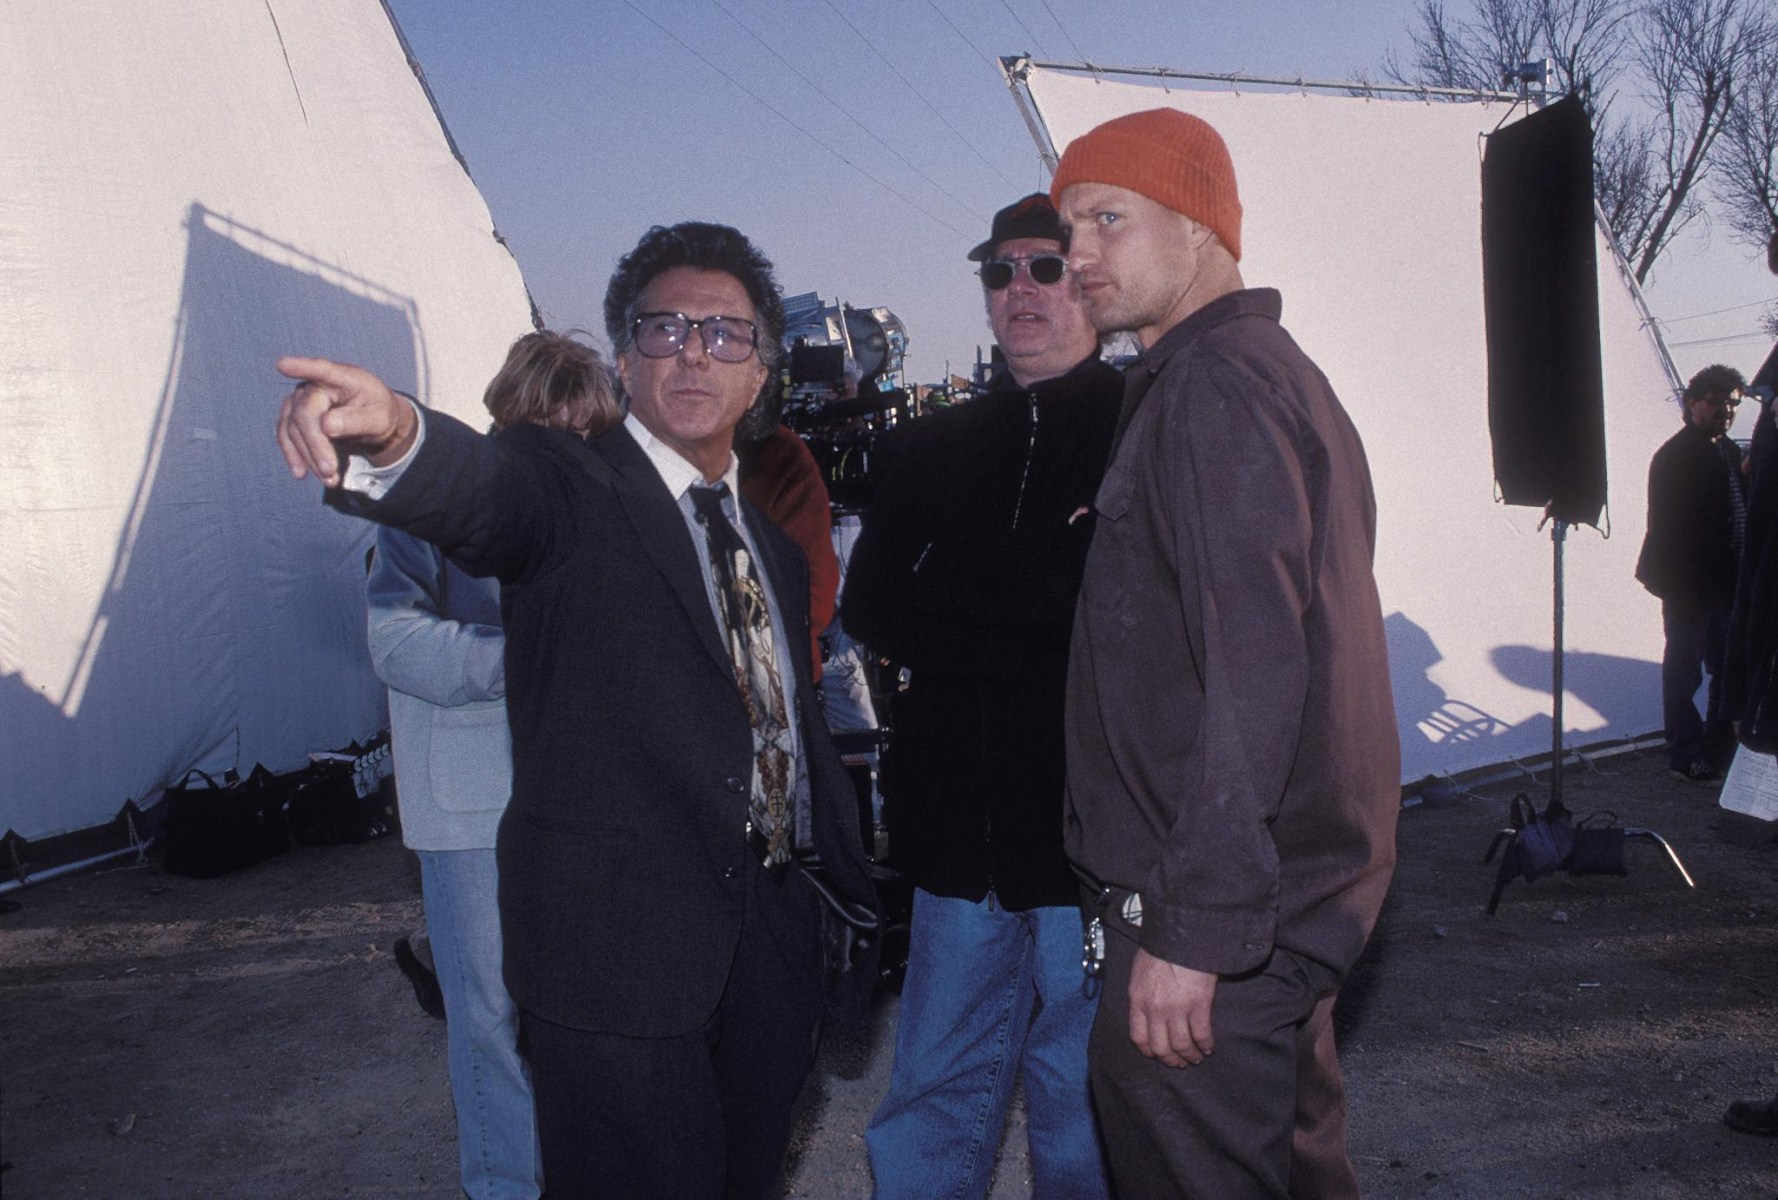 Wag the Dog Behind the Scenes Photos & Tech Specs